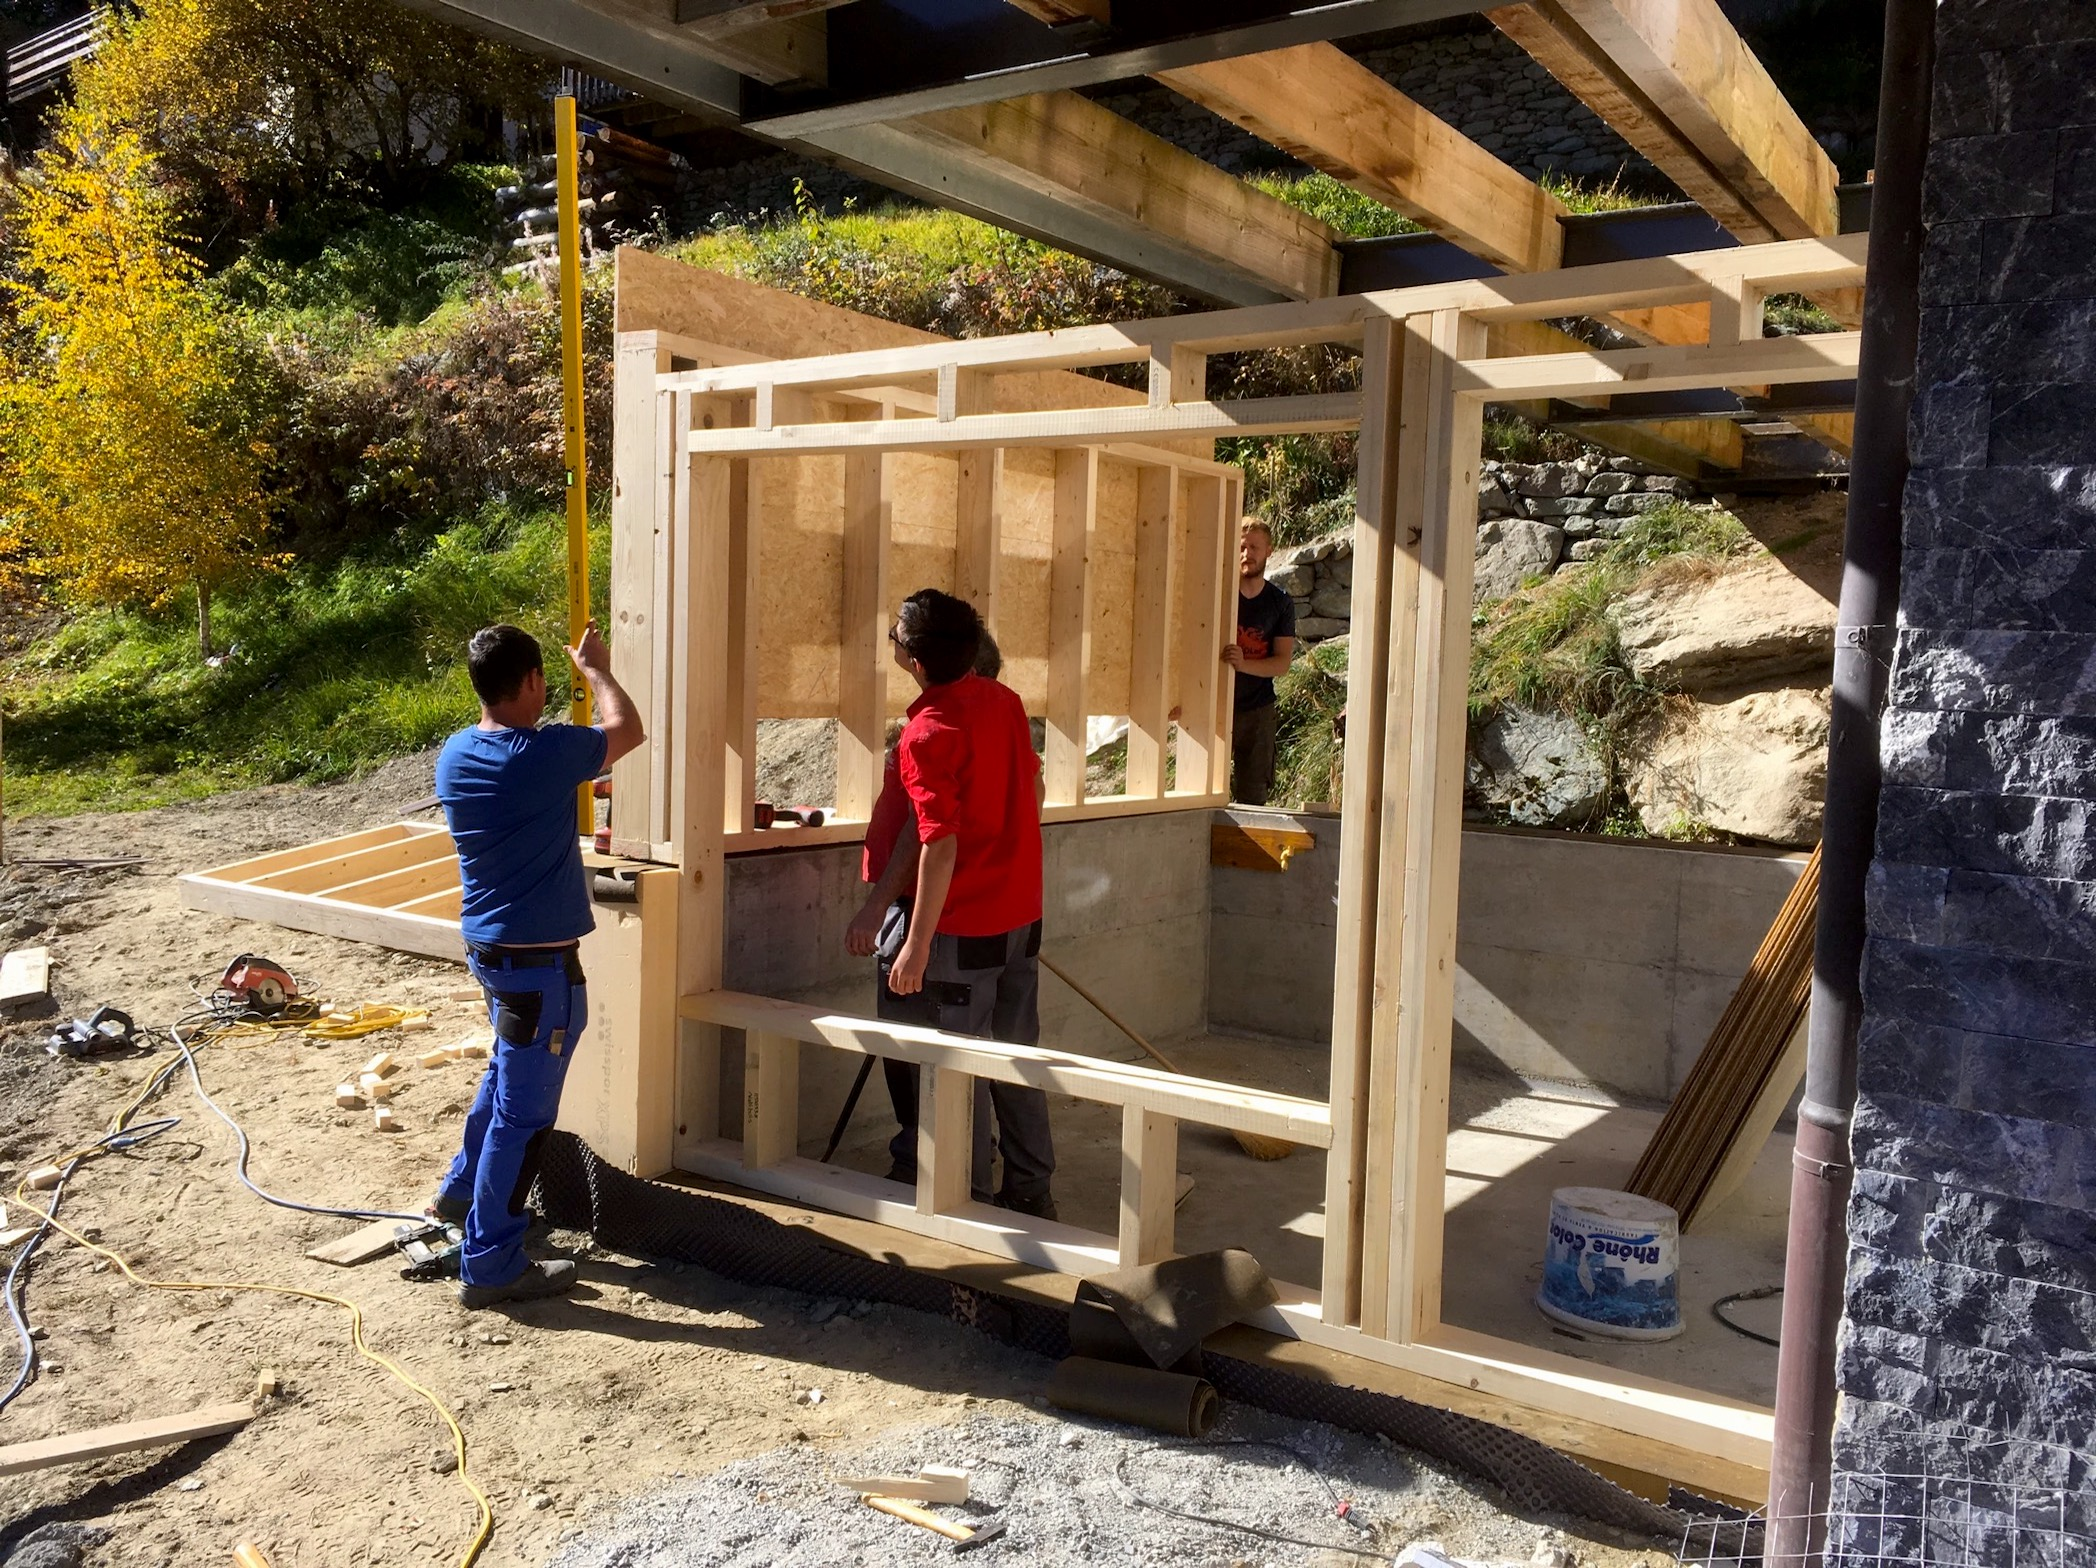 Chalet Le Iceberg: building the sauna with window.